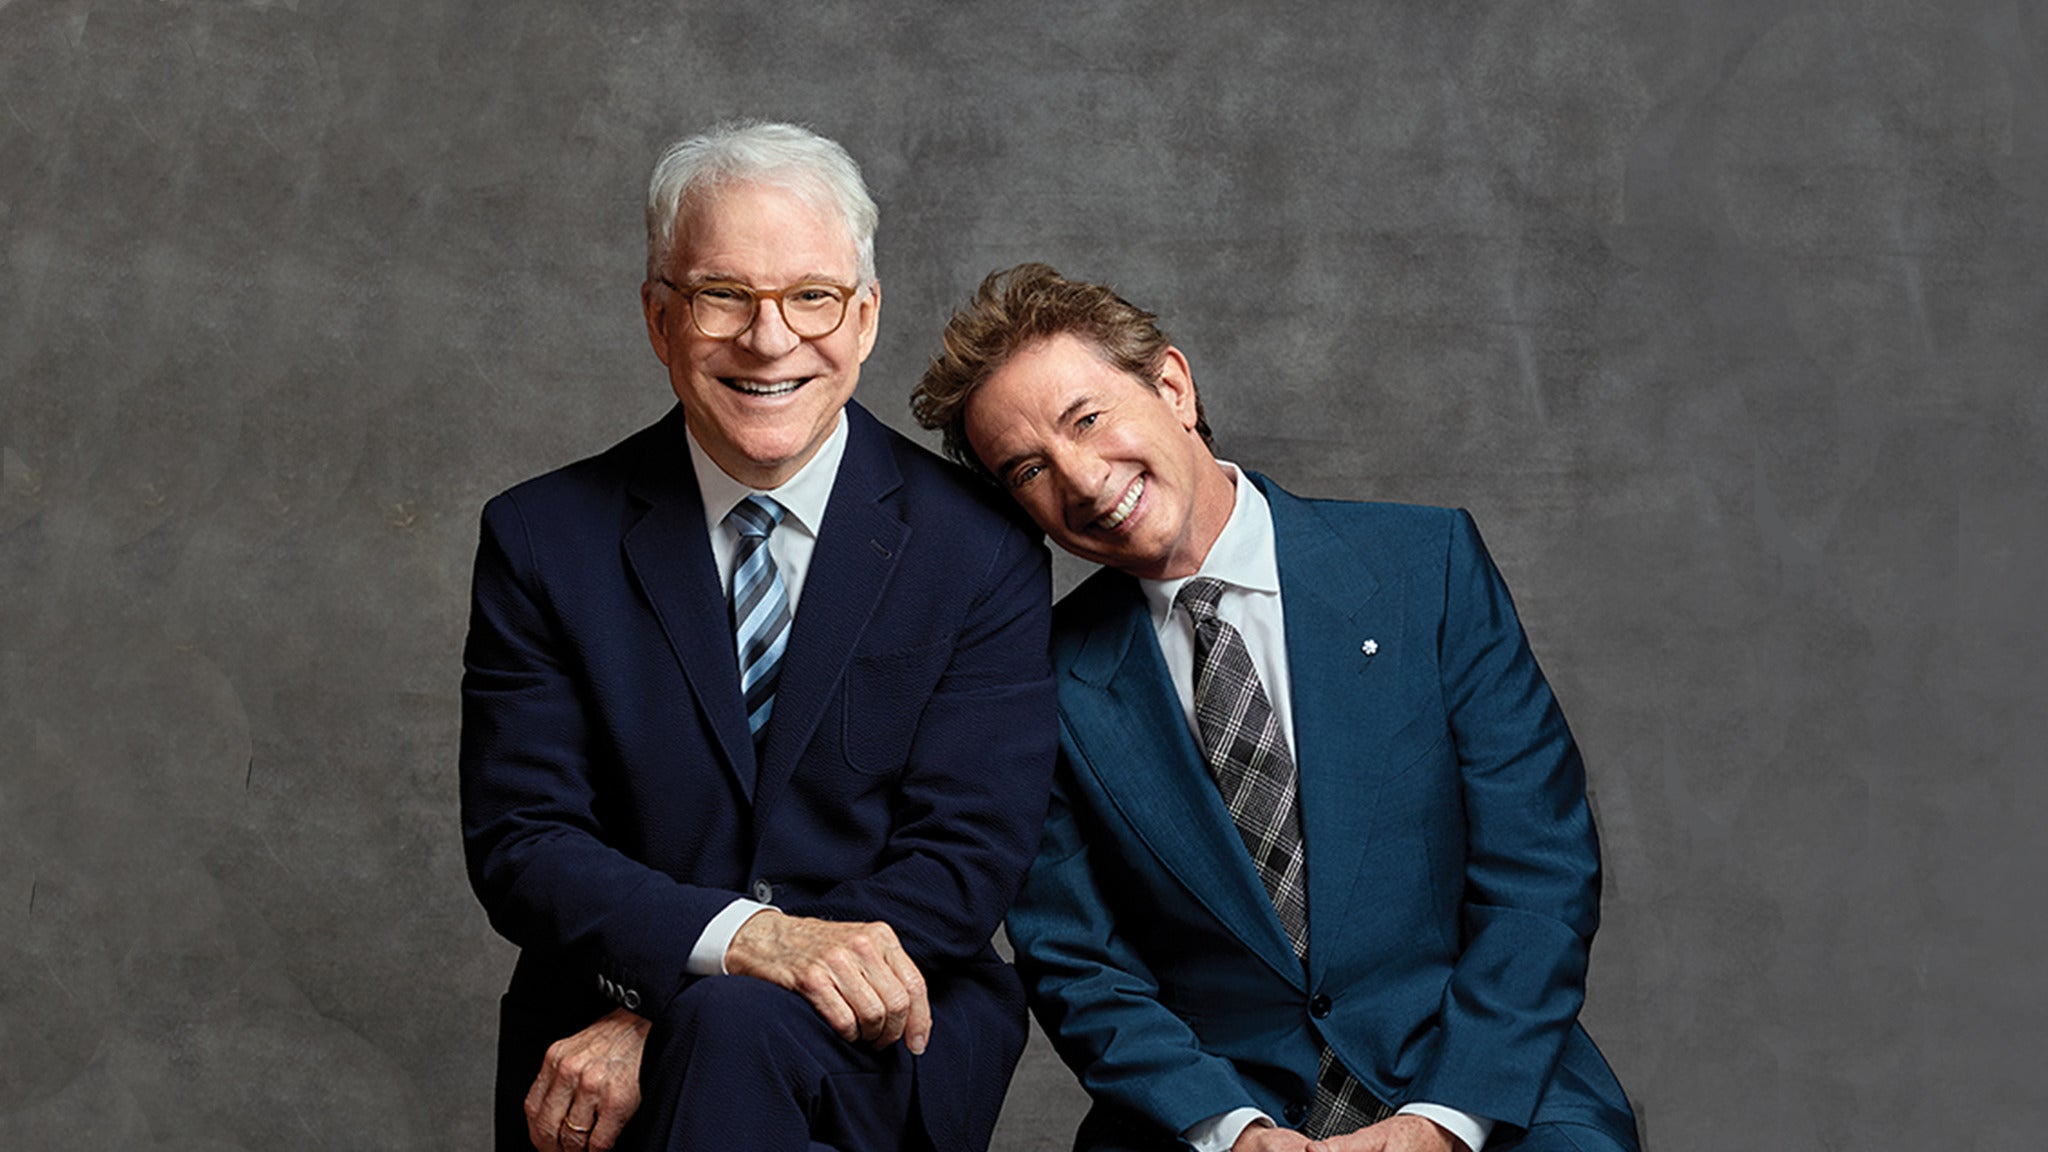 Steve Martin w/ Martin Short at Mountain Winery